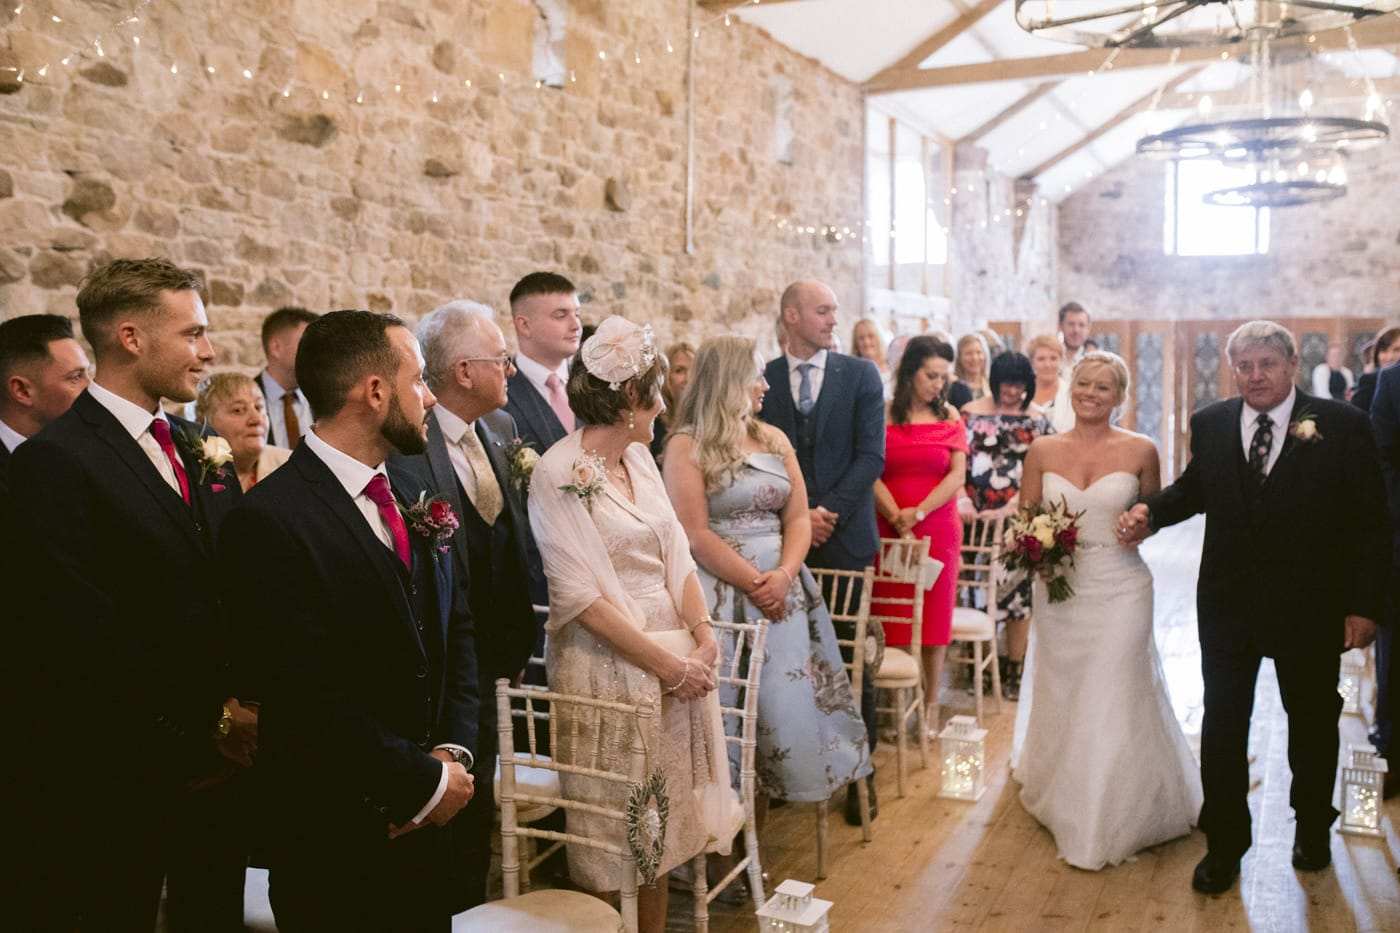 Guests Welcoming Bride Coming Down The Aisle with Bunch of Pretty Flowers Portrait Session